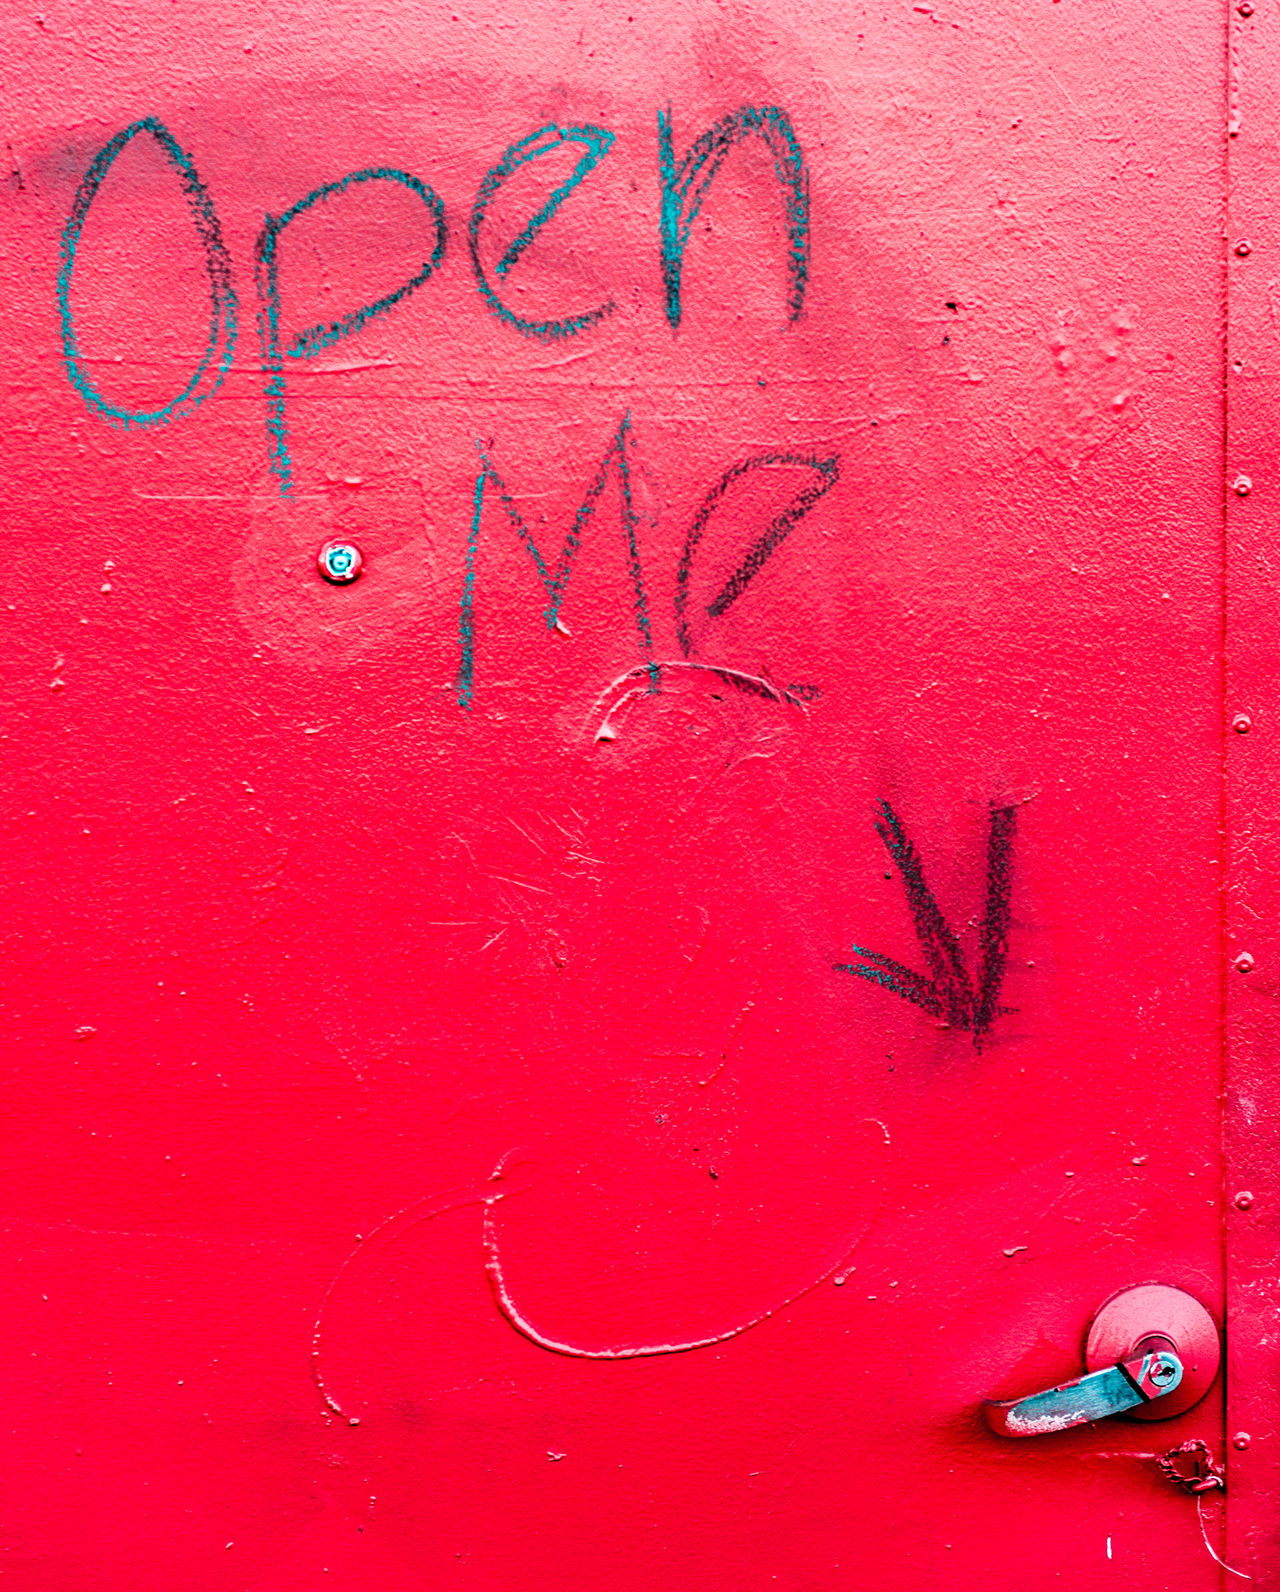 Alphabet Close-up Communication Day Handwriting  No People Open Me Red Spray Paint Text Wynwood Walls